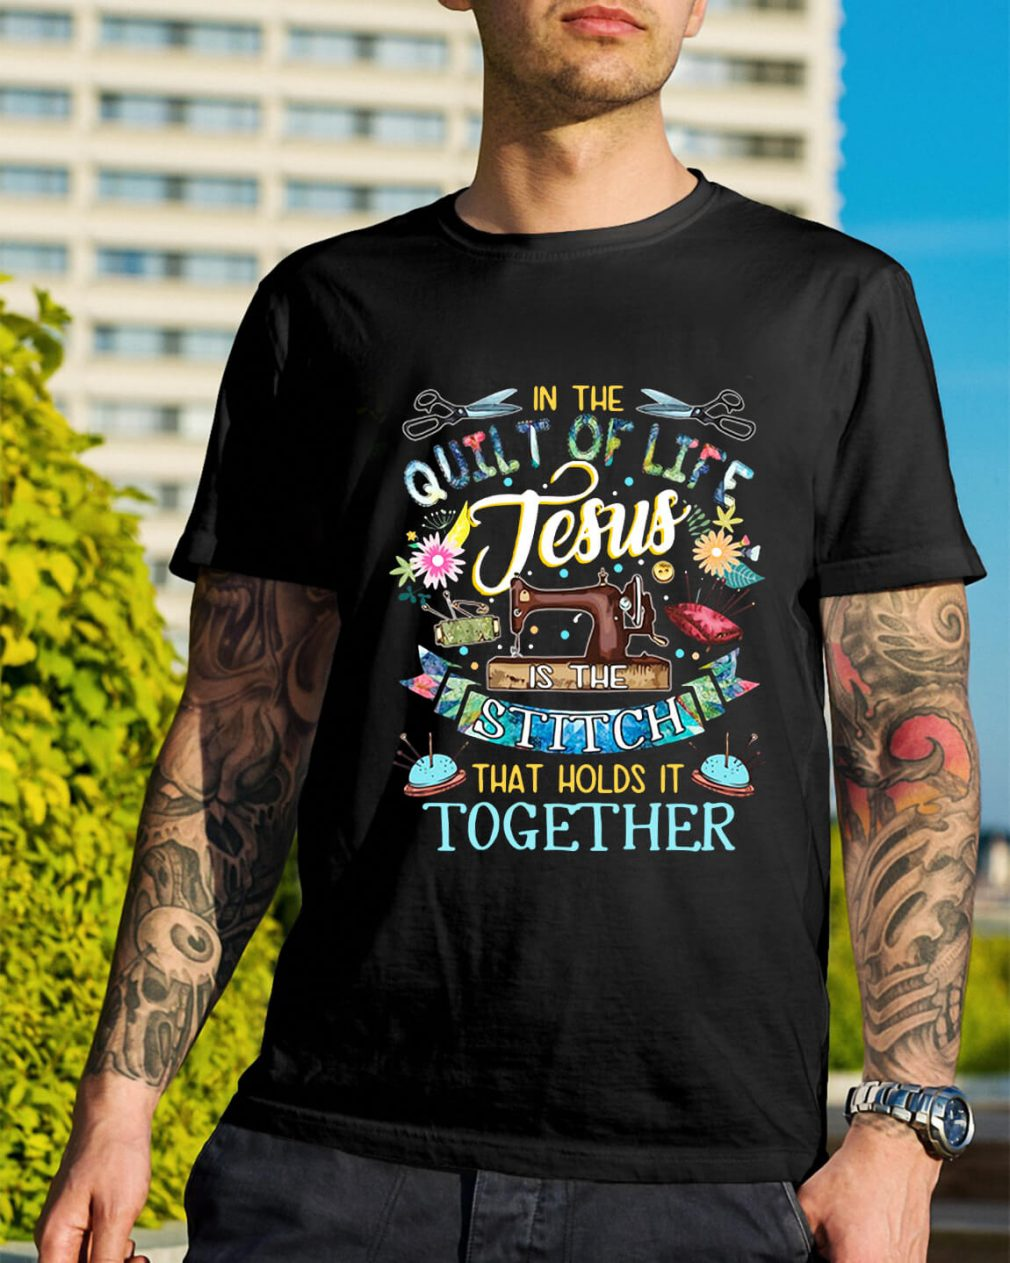 In the quilt of life Jesus is the Stitch that holds it together shirt